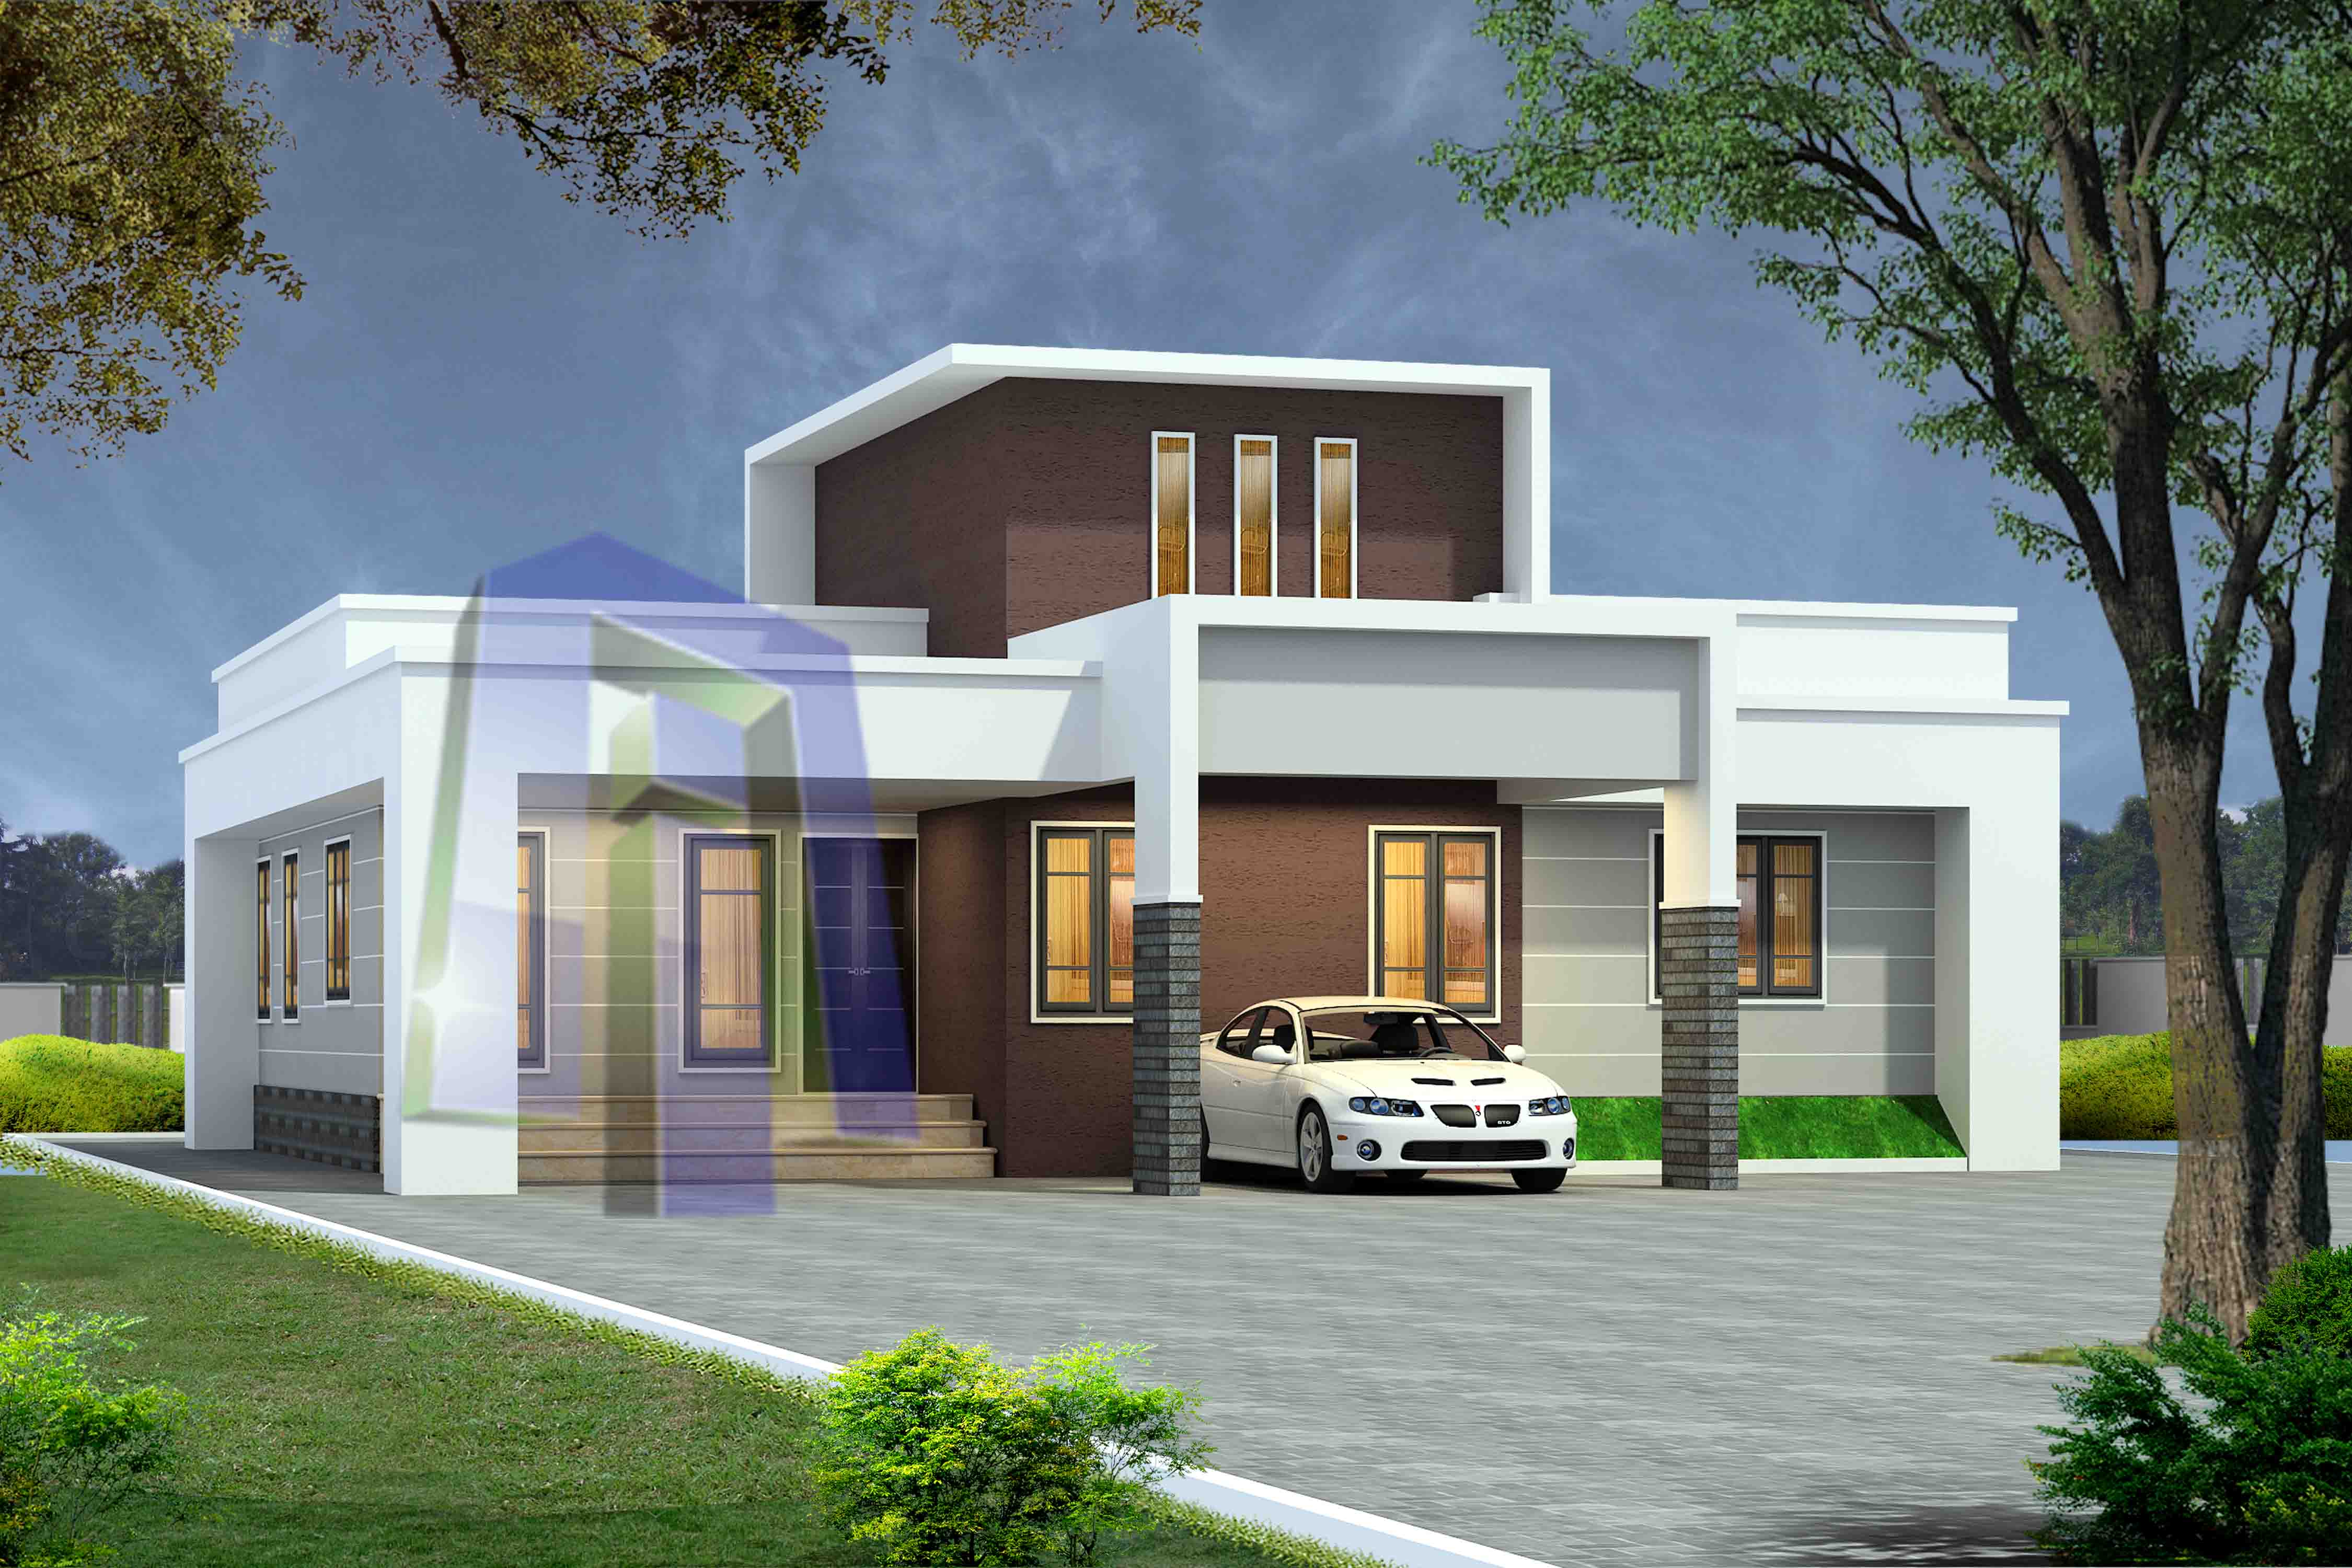 2 Bedroom House Plan Indian Style | 1000 Sq Ft House Plans ...